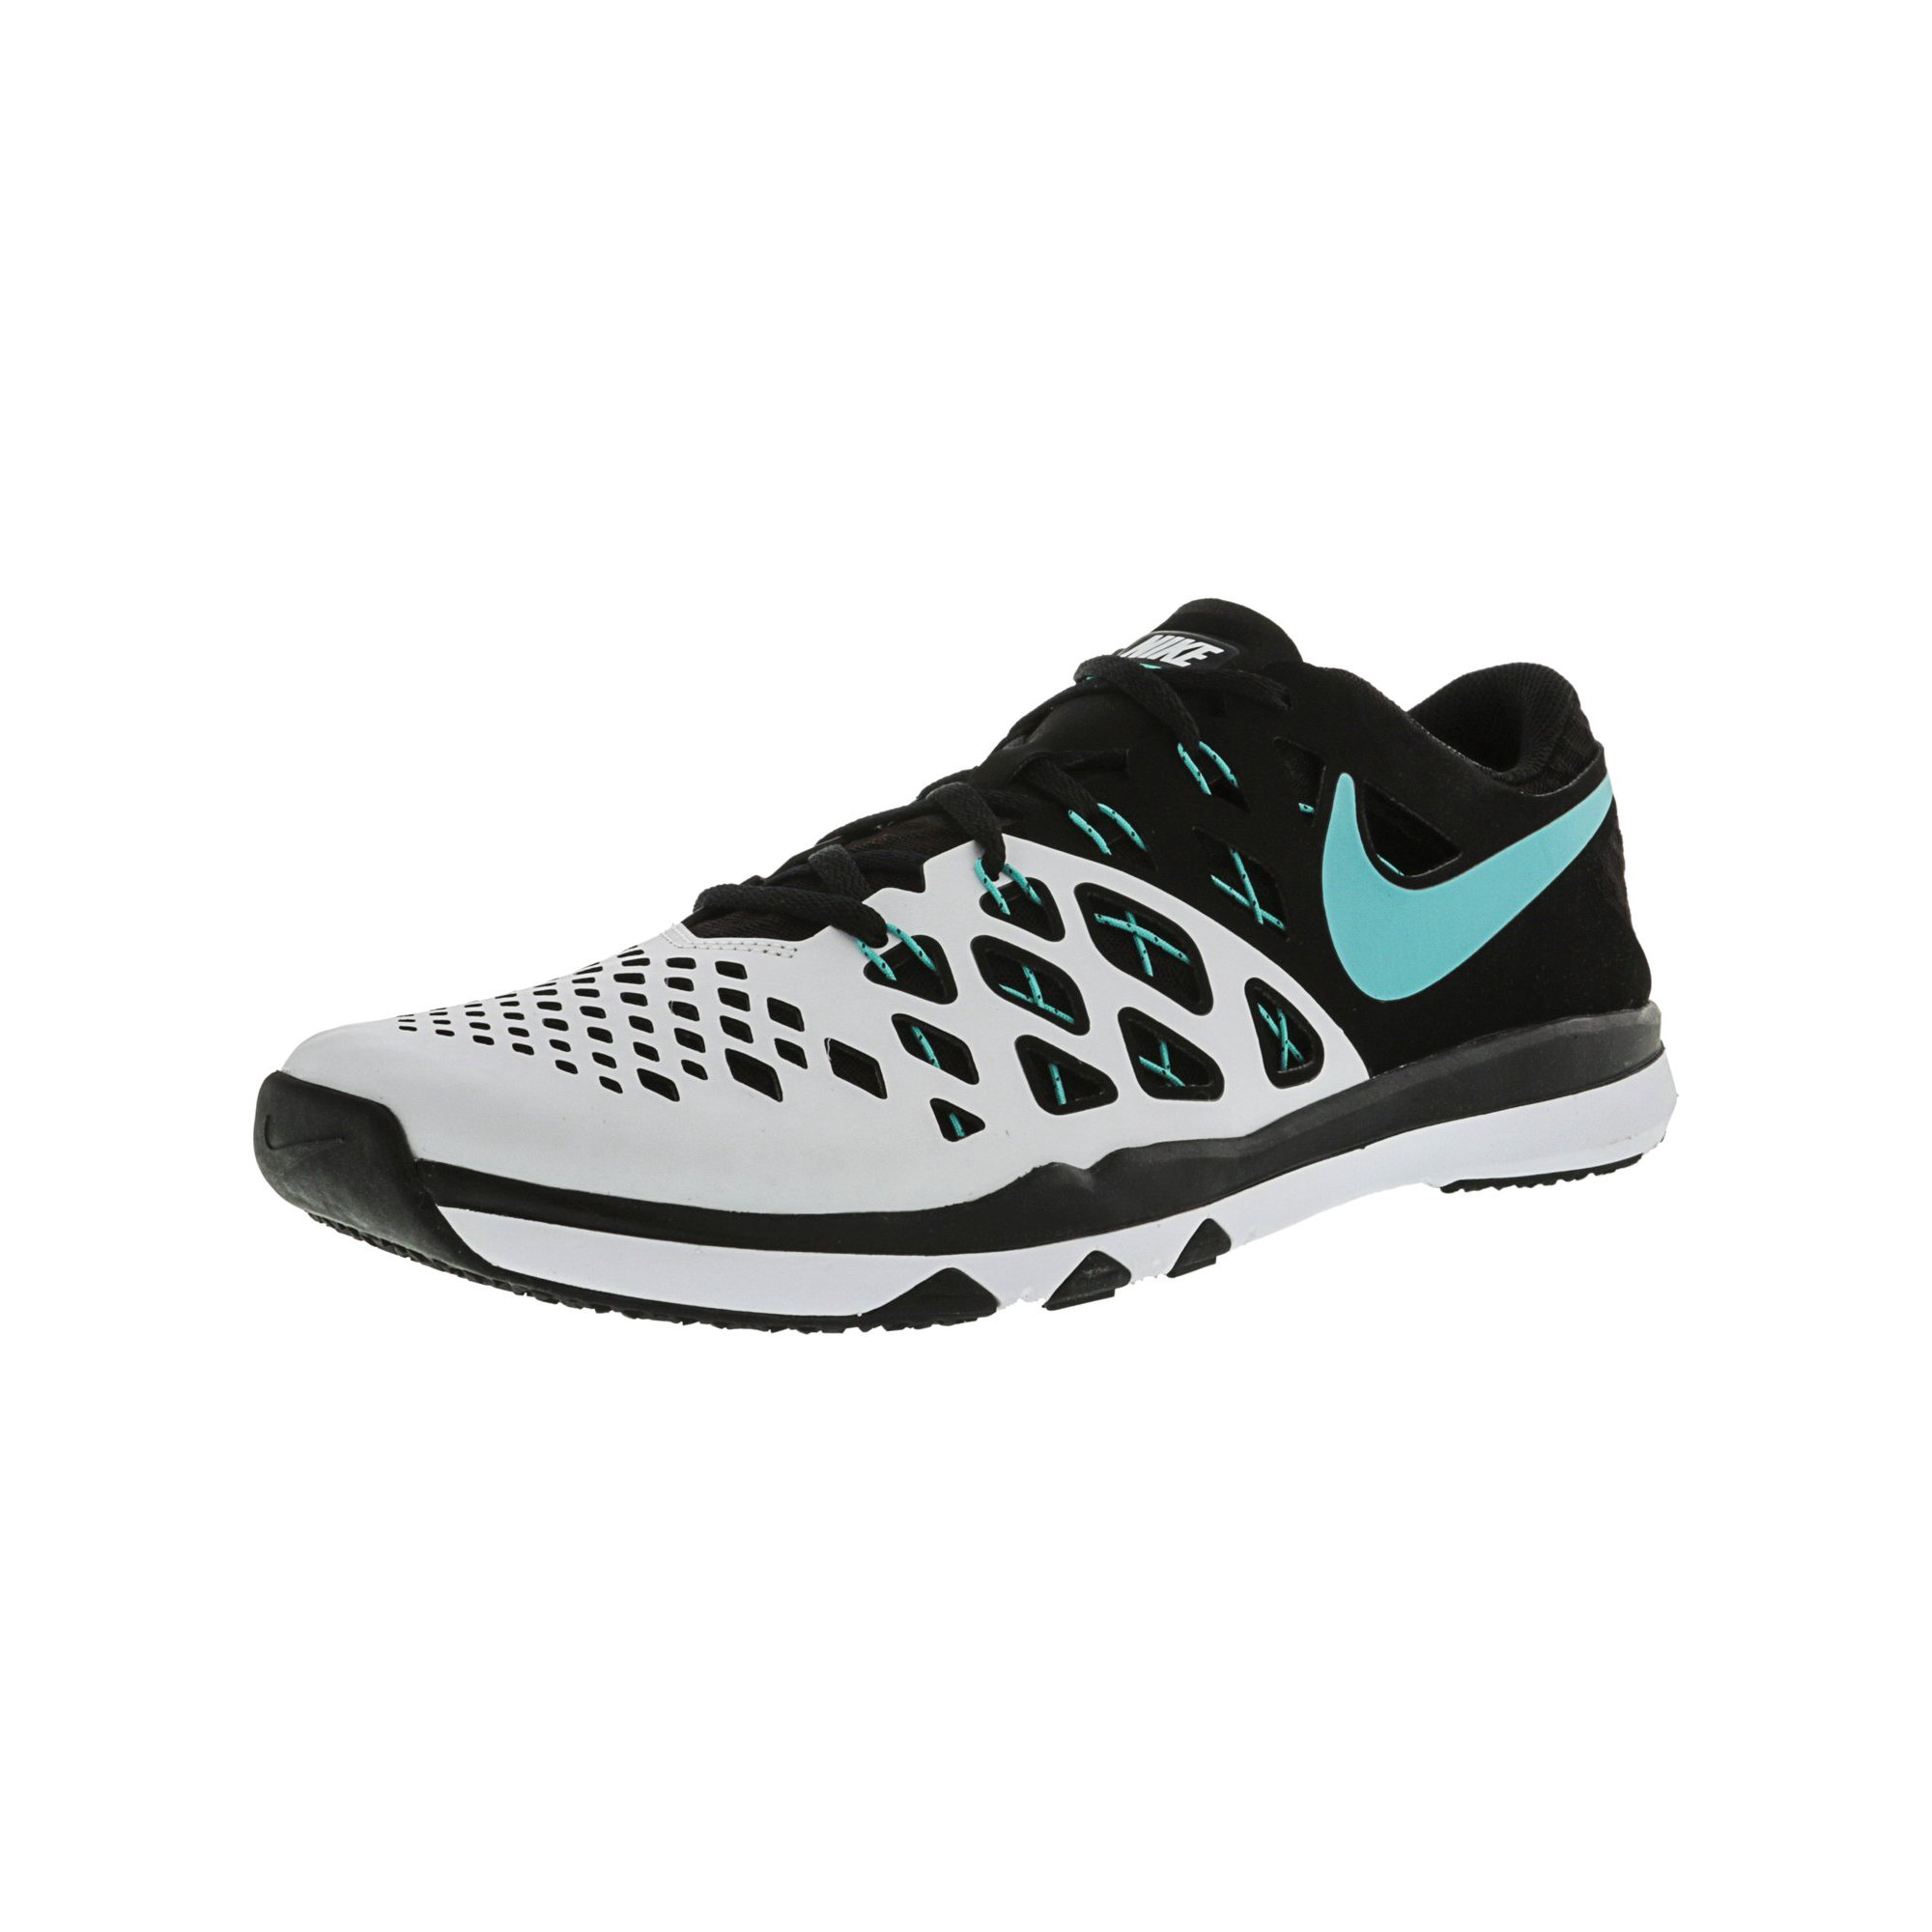 size 40 61171 7701a Nike Men s Train Speed 4 Black   White-Black Ankle-High Fabric Training  Shoes - 8.5M   Walmart Canada